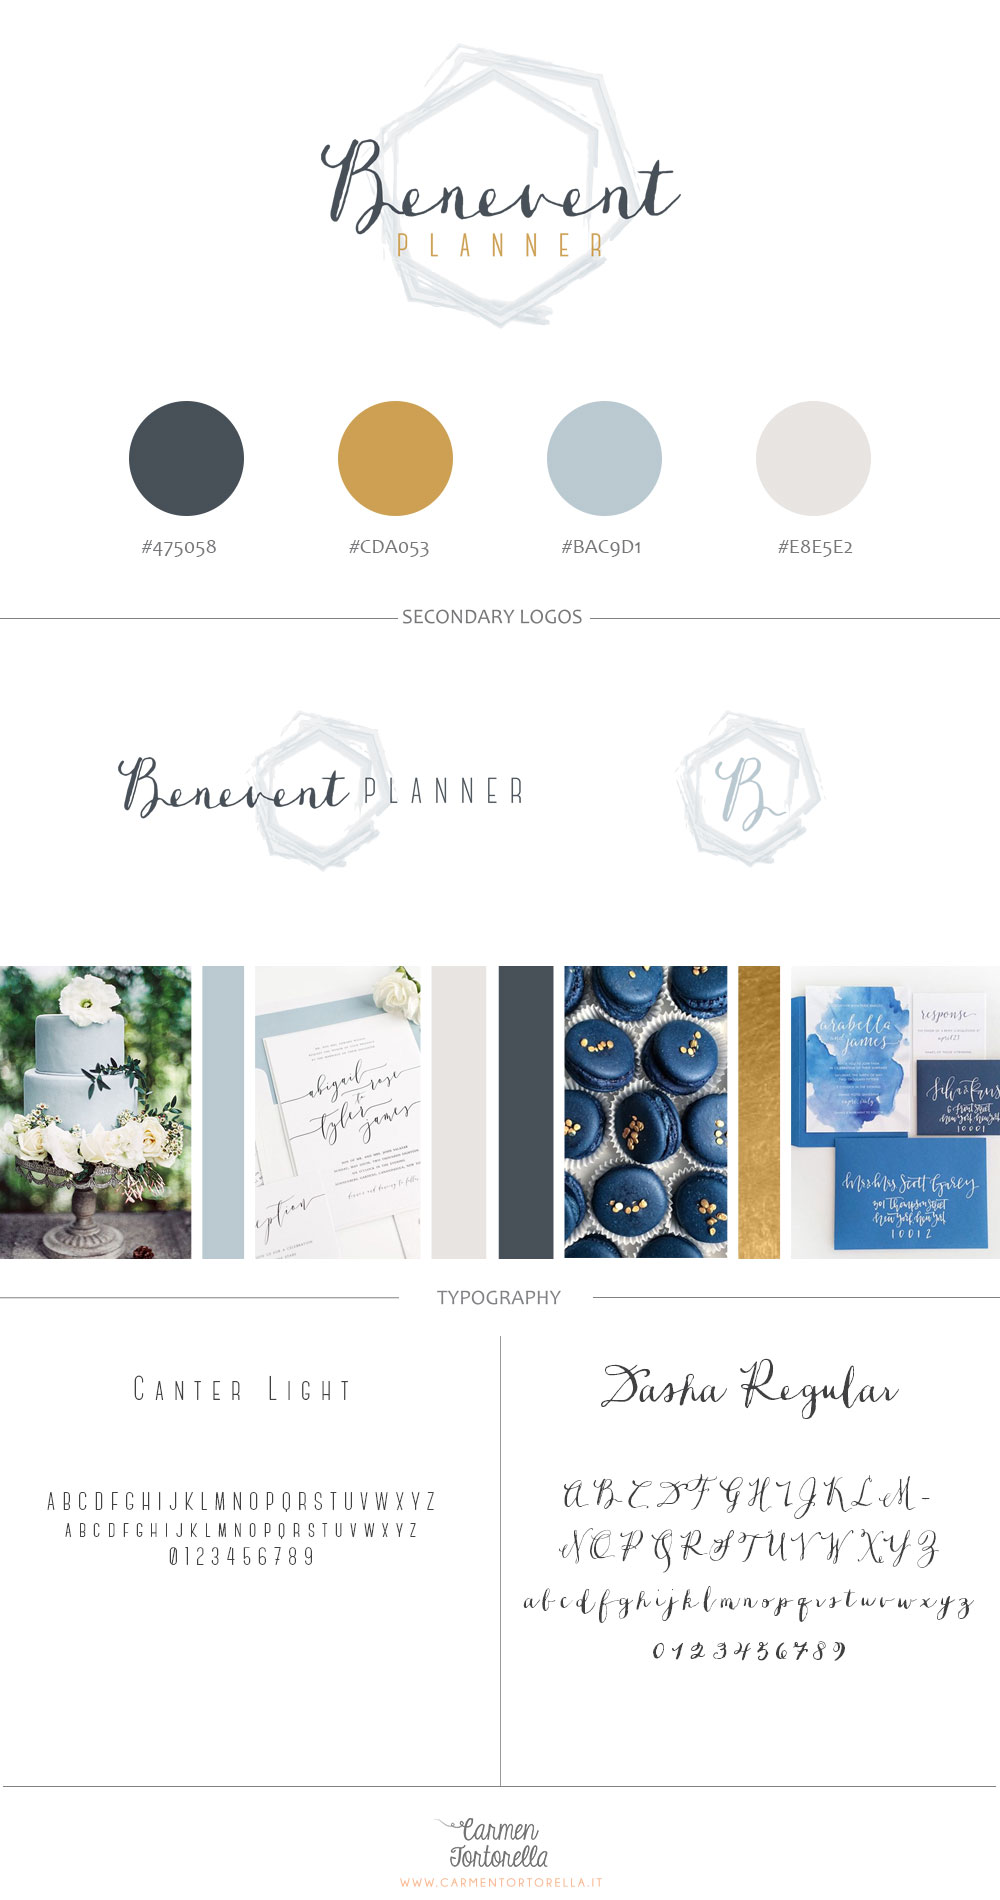 Benevent Planner brand-board